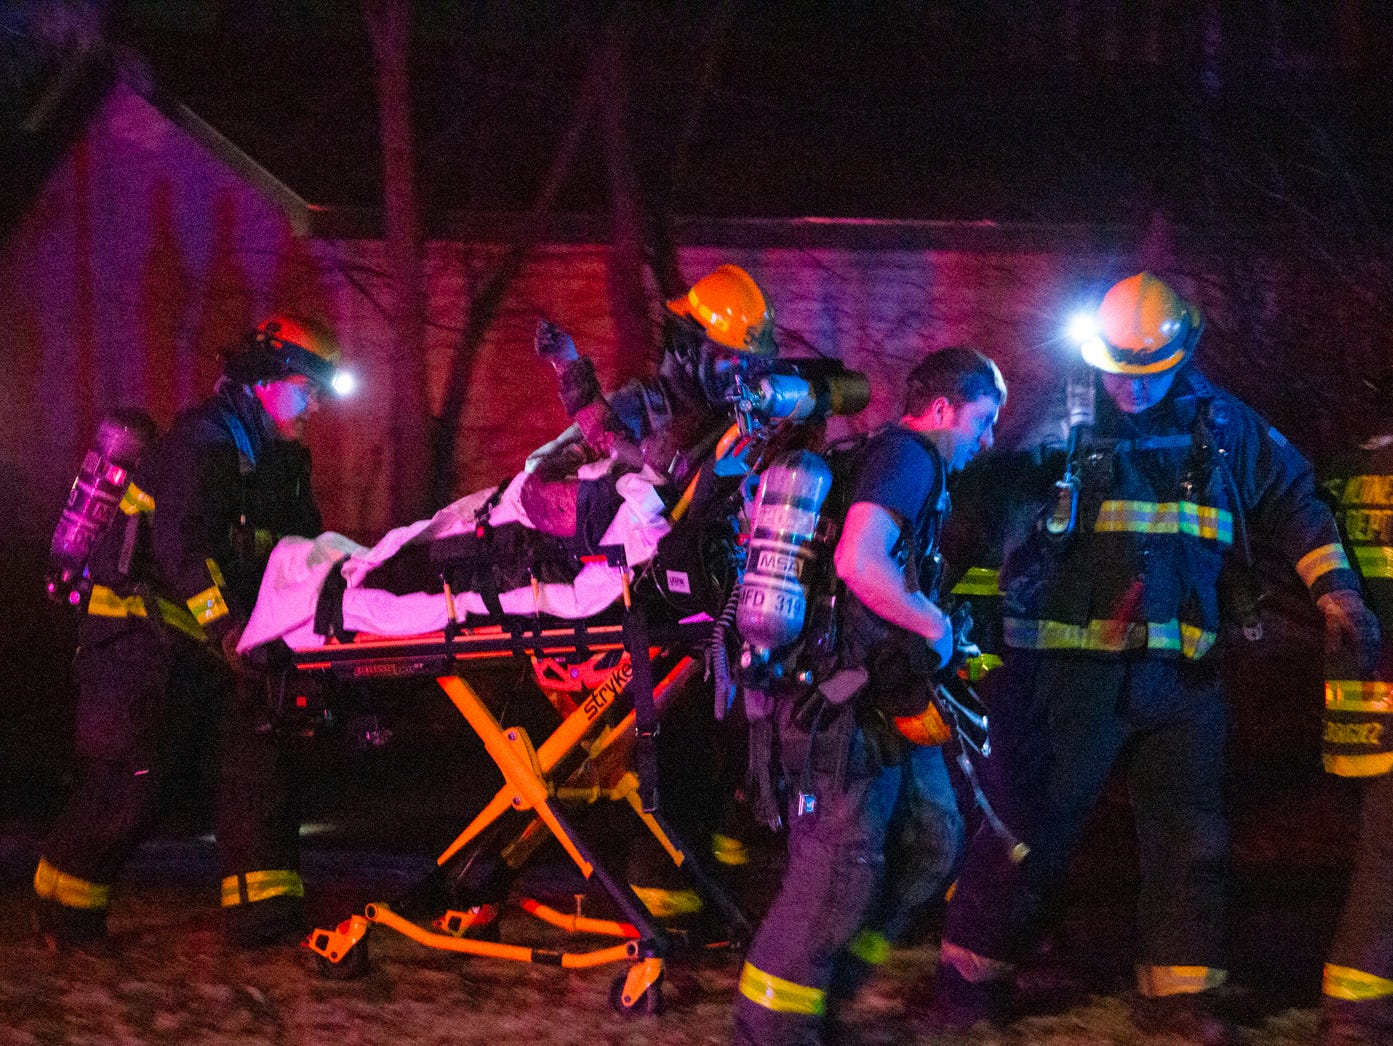 Emergency personnel transport an elderly woman out of a burning house at 1113 37th Street on Wednesday, Jan. 9, 2018.